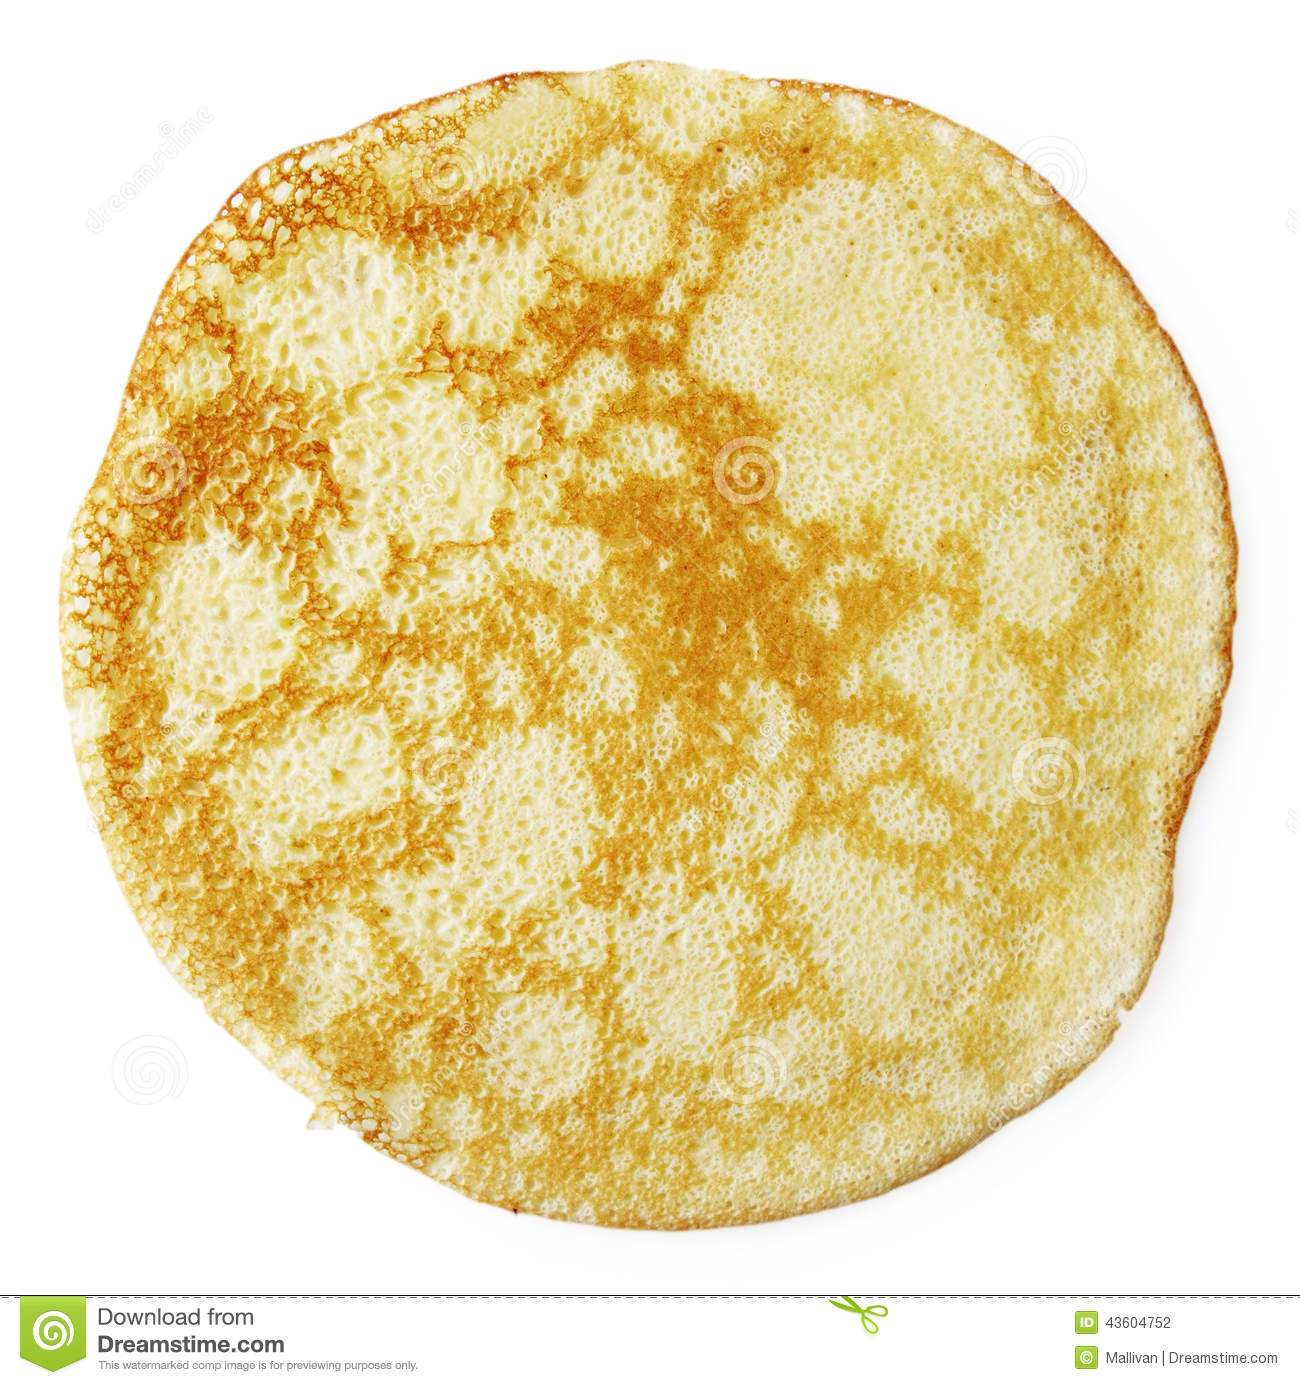 Single pancake clipart 2 » Clipart Portal.